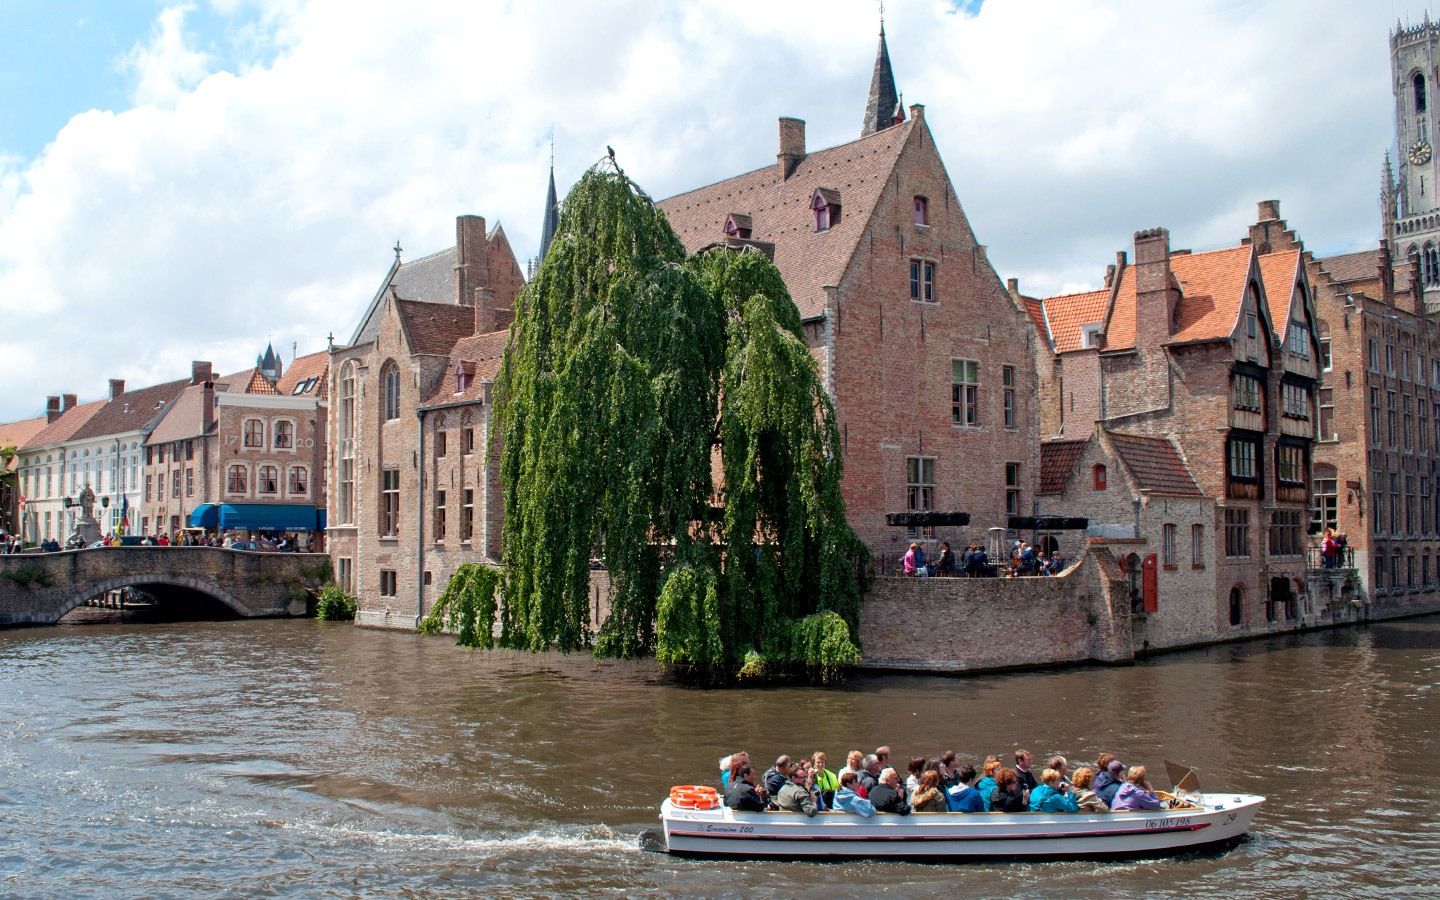 Views of the Bruges canals from Rozenhoedkaai